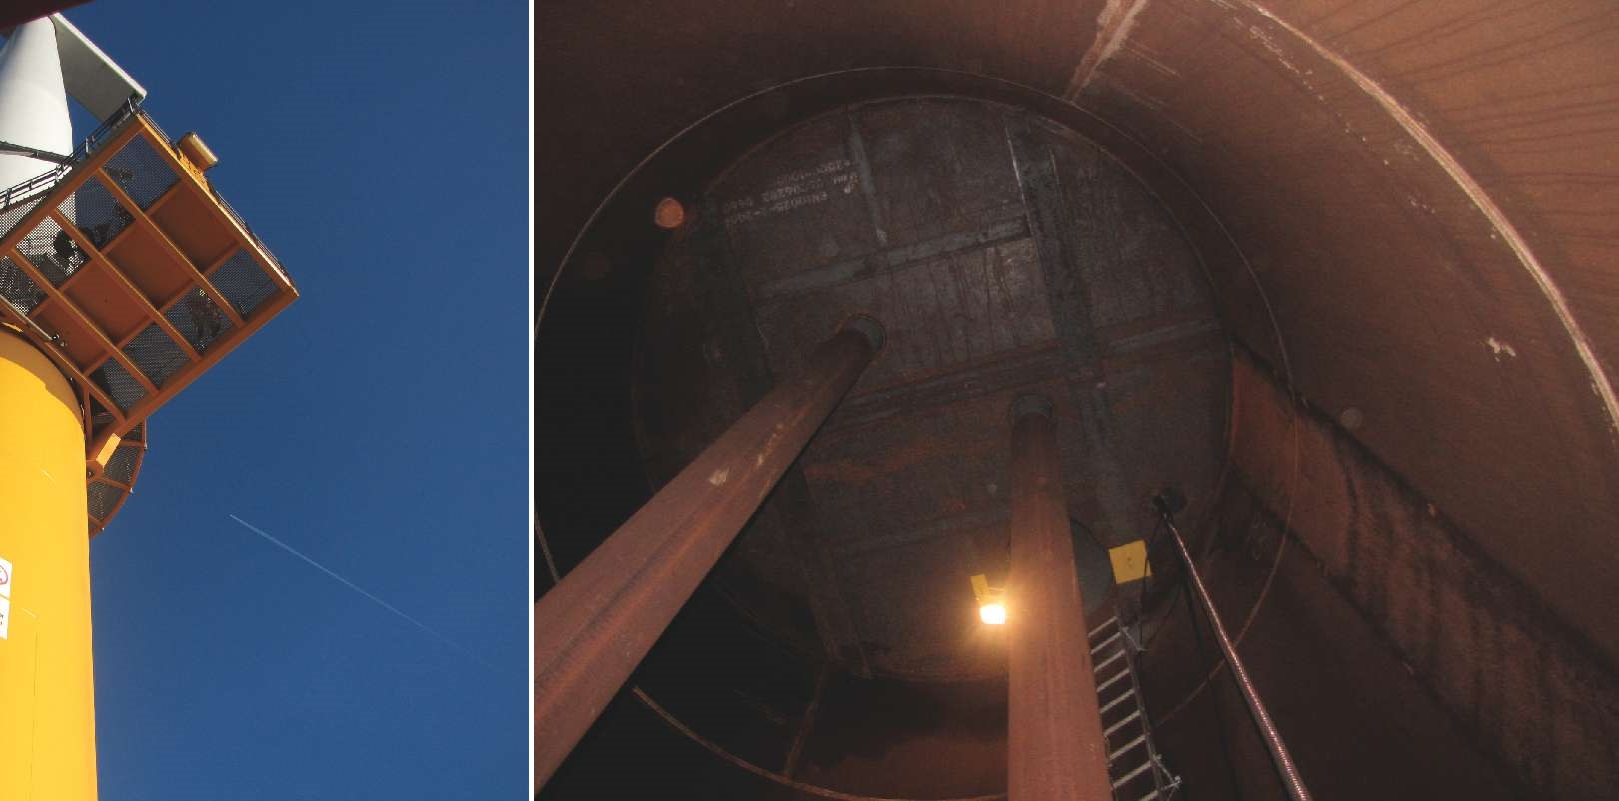 Left, the wind turbine monopile. Right, the sealed portion of the monopile below the lower platform. Photos courtesy of Alex Delwiche.